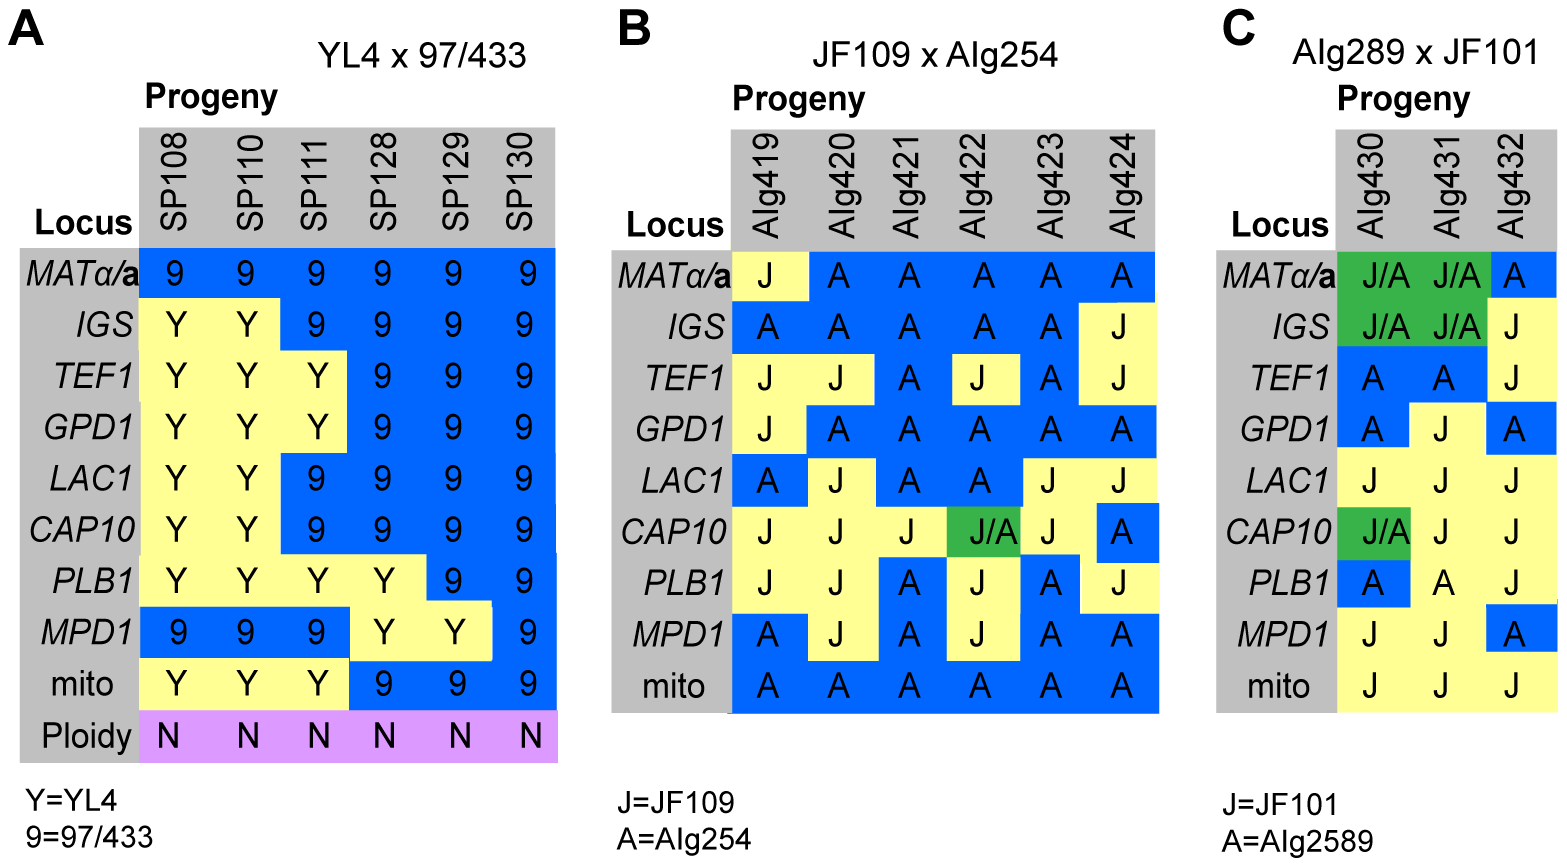 Molecular characterisation of progeny from marked outgroup crosses.